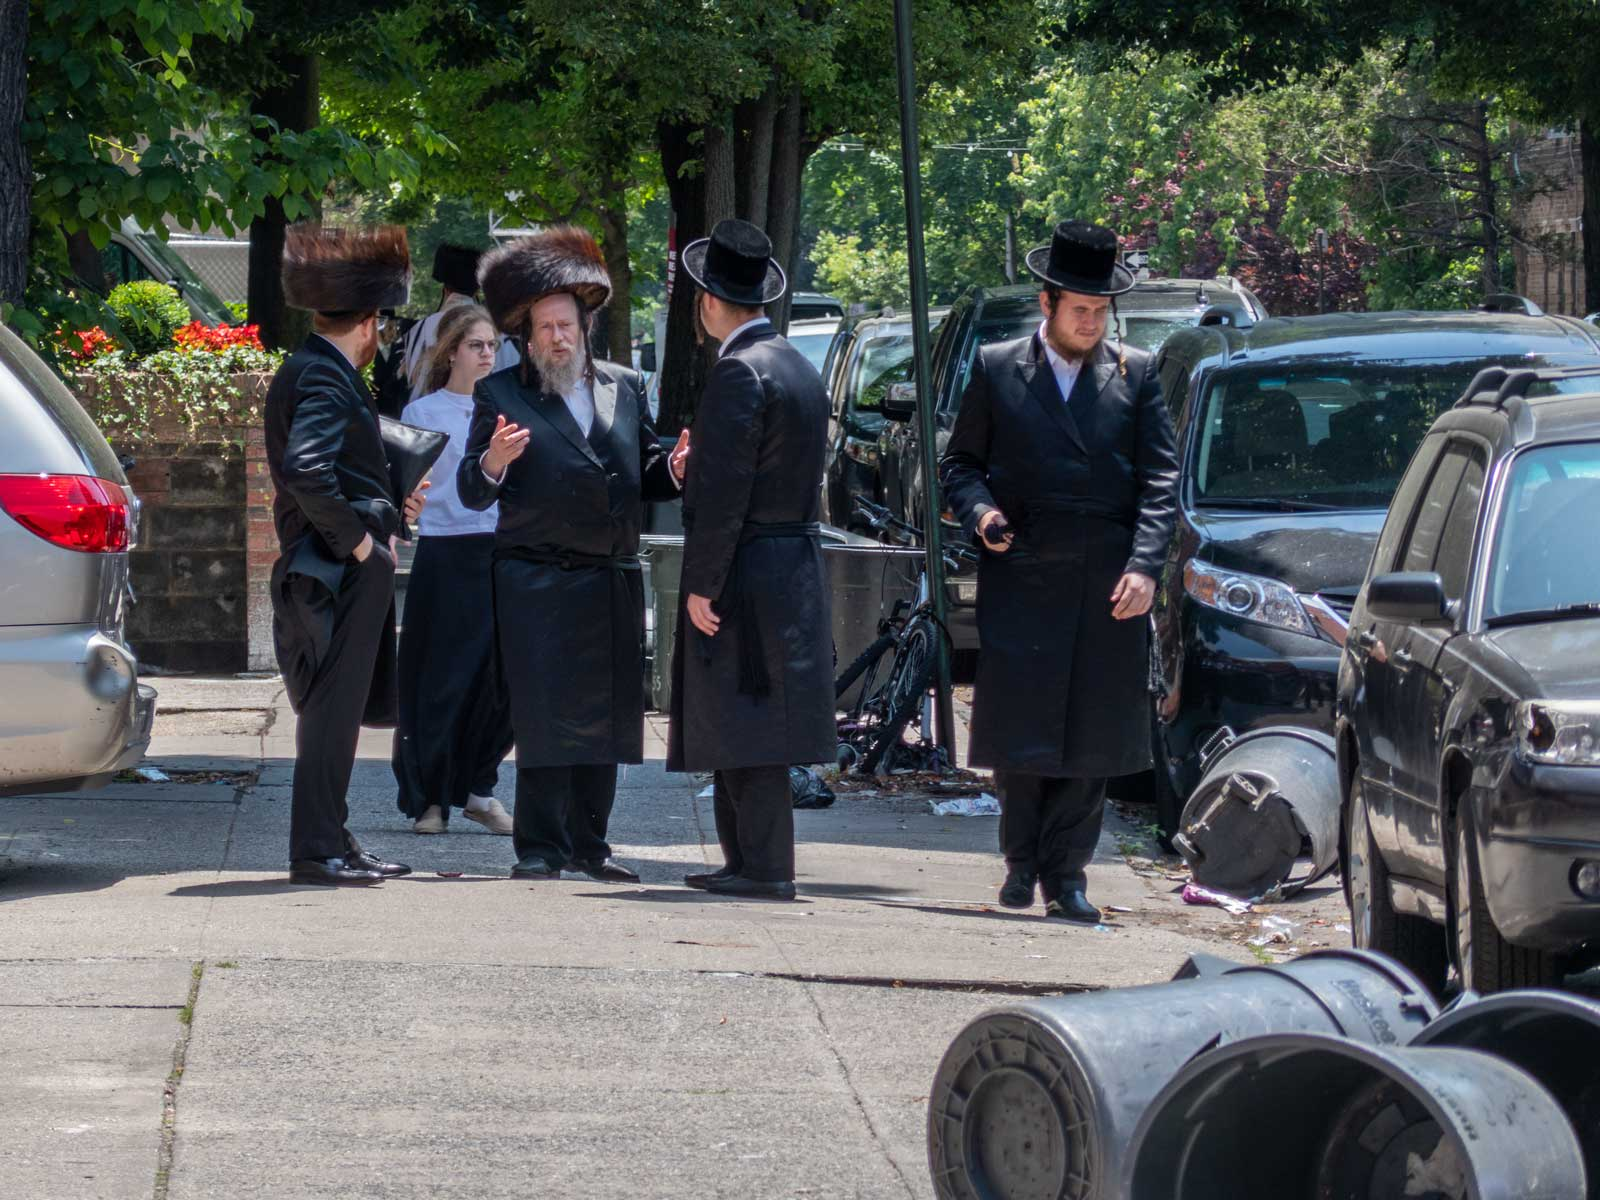 Orthodox Jews in Borough Park Brooklyn